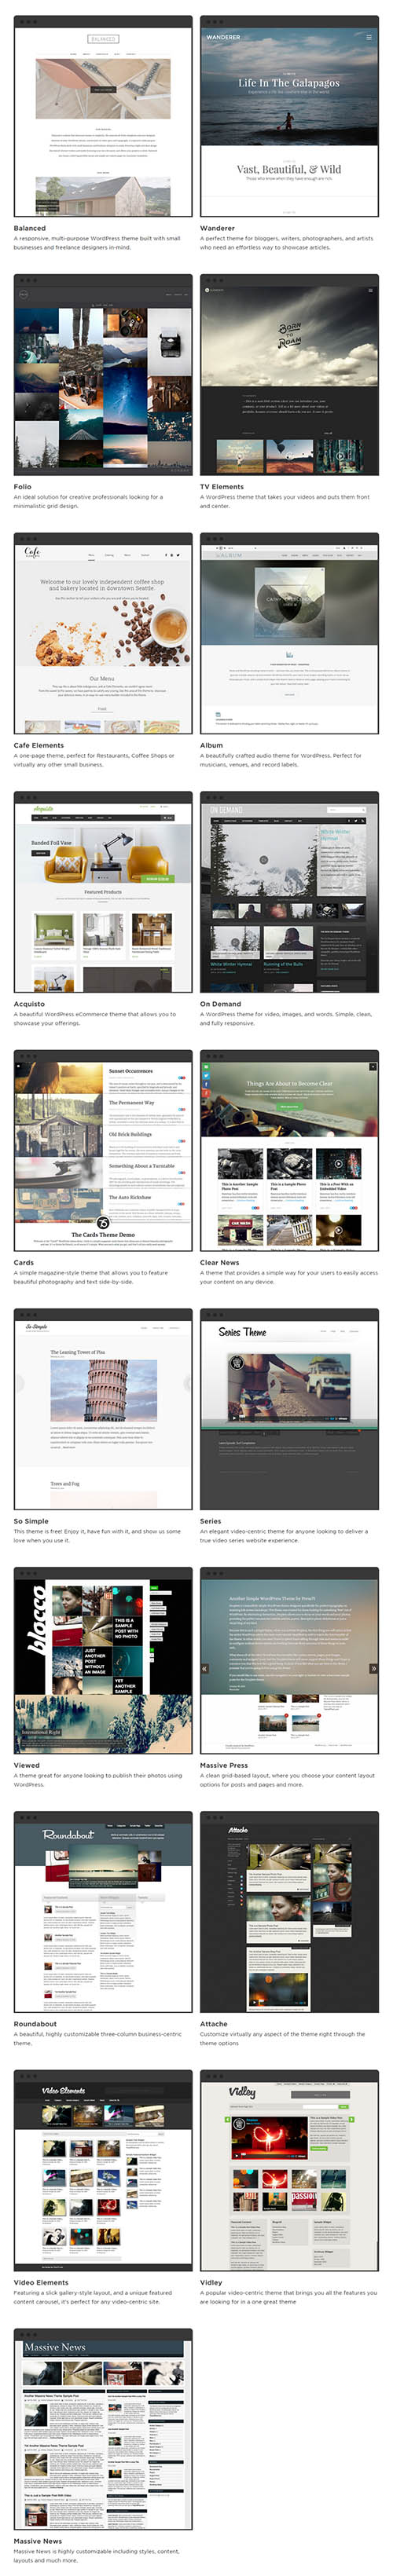 Press75 - WordPress Themes Pack 2015